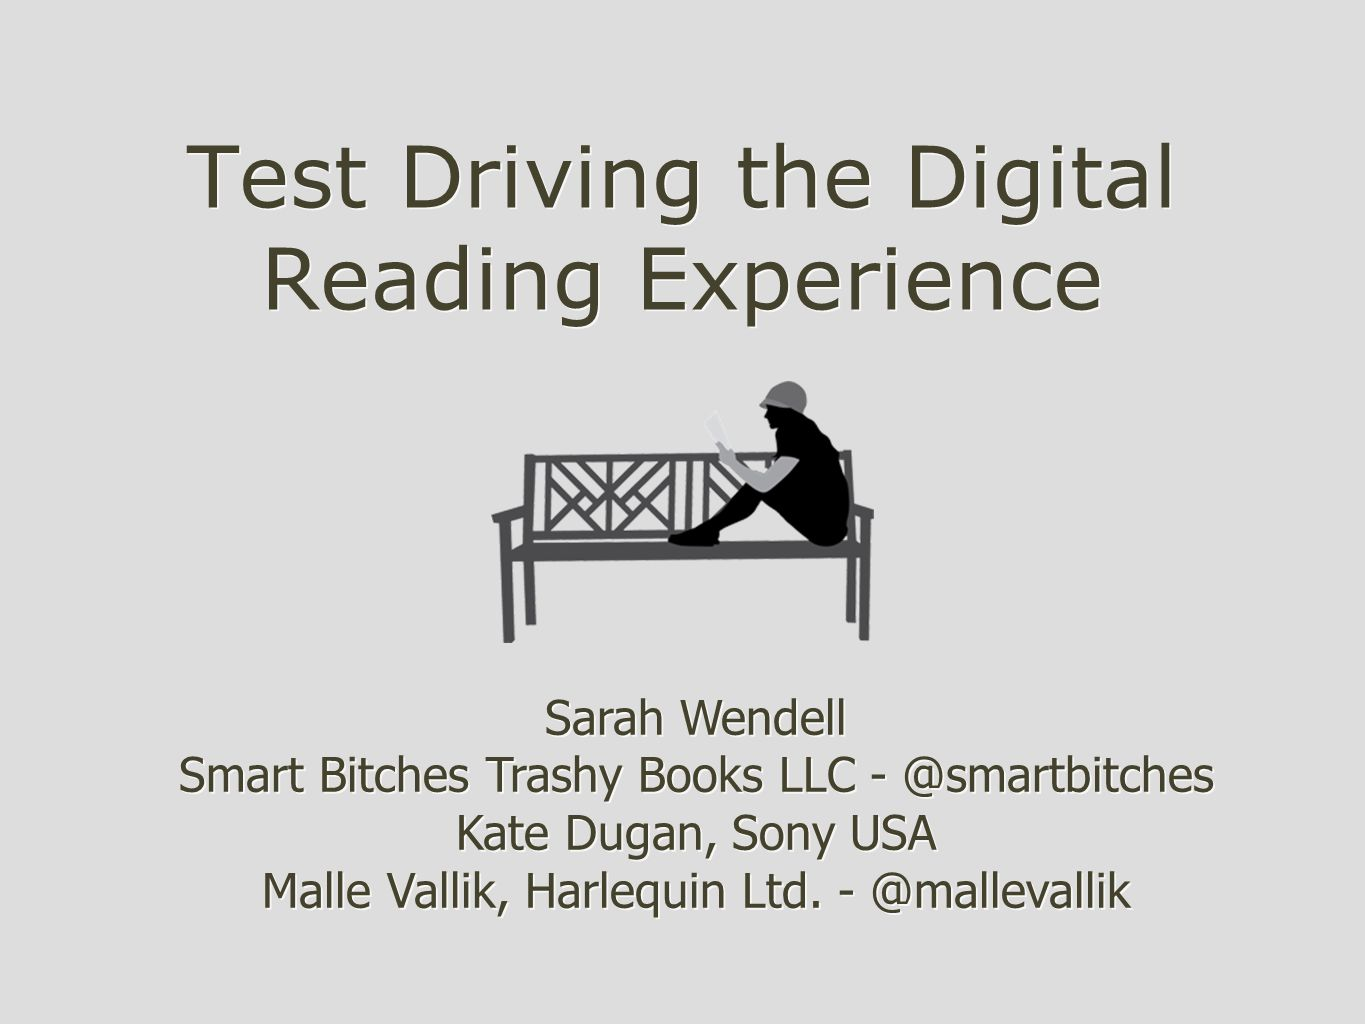 Test Driving the Digital Reading Experience Sarah Wendell Smart Bitches Trashy Books LLC - @smartbitches Kate Dugan, Sony USA Malle Vallik, Harlequin Ltd.